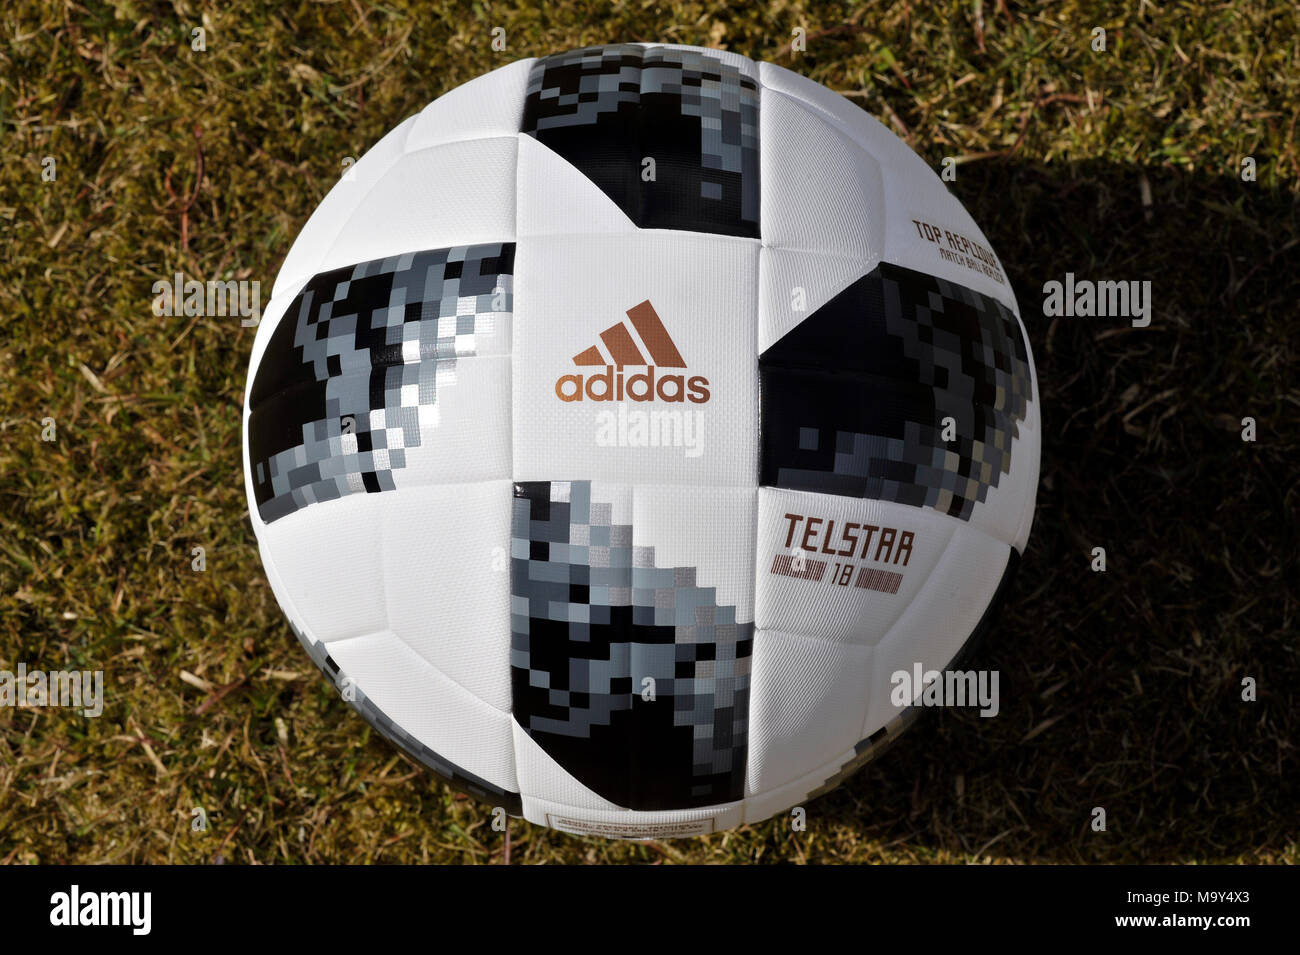 Adidas World Cup Football 2018 Imágenes De Stock   Adidas World Cup ... 6fe5b1238d9ba